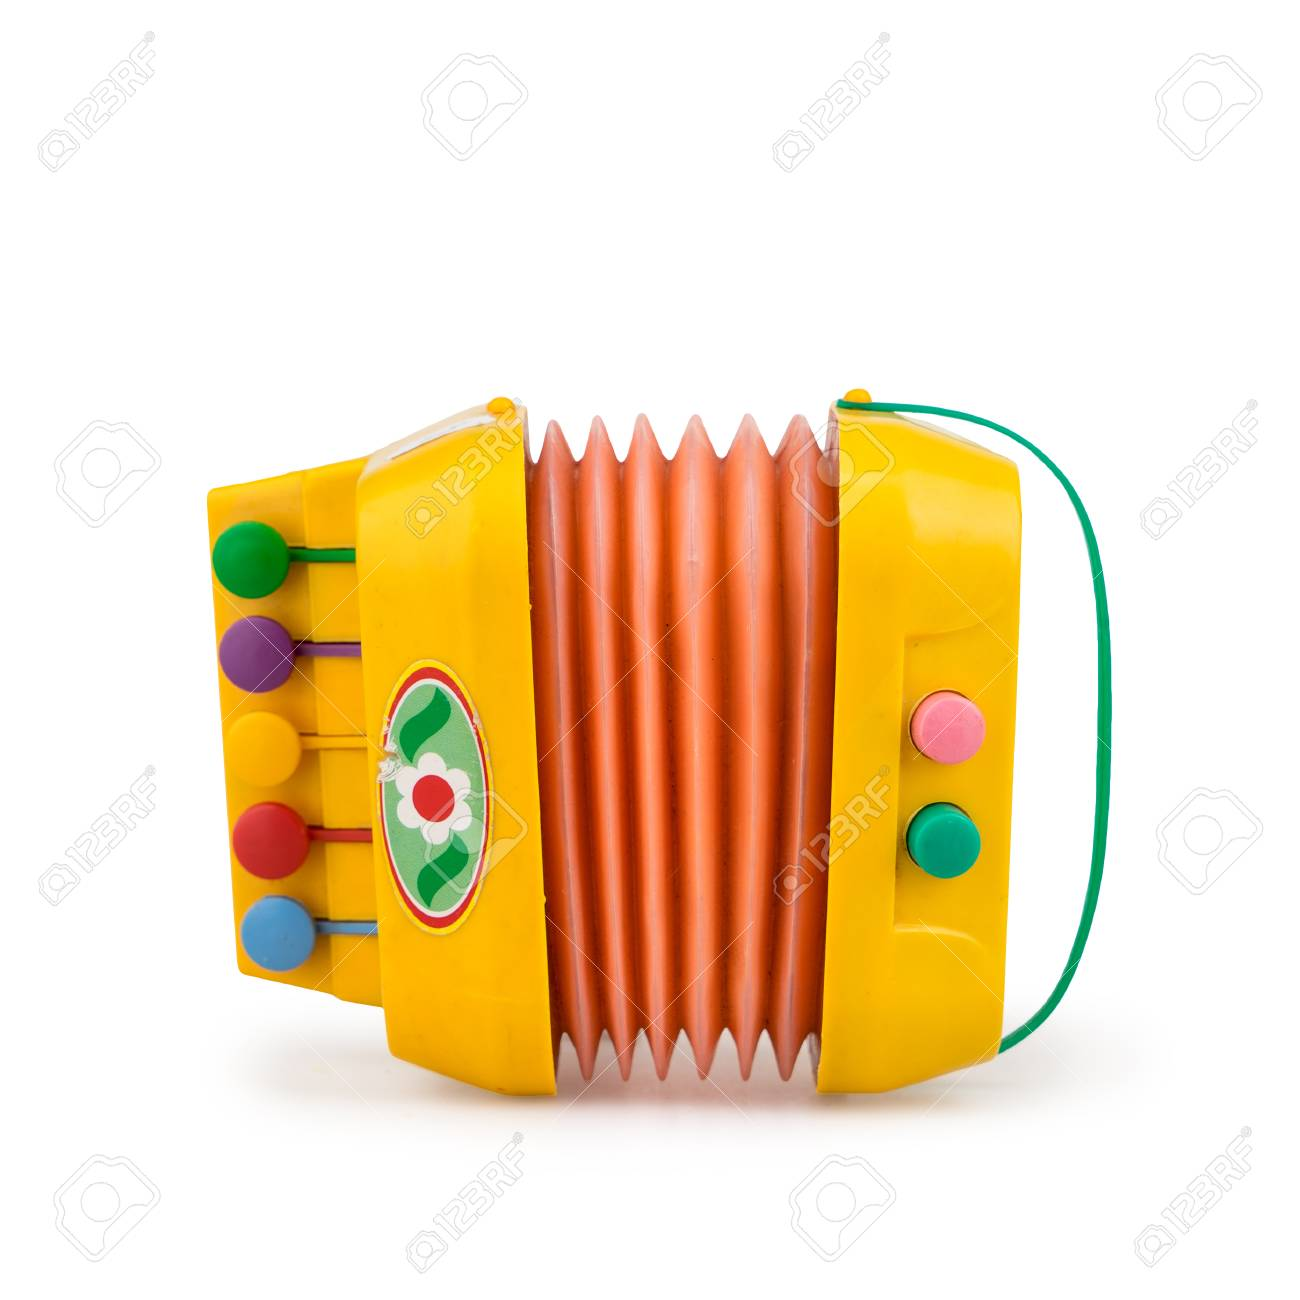 Childrens colorful toy accordion on a white background